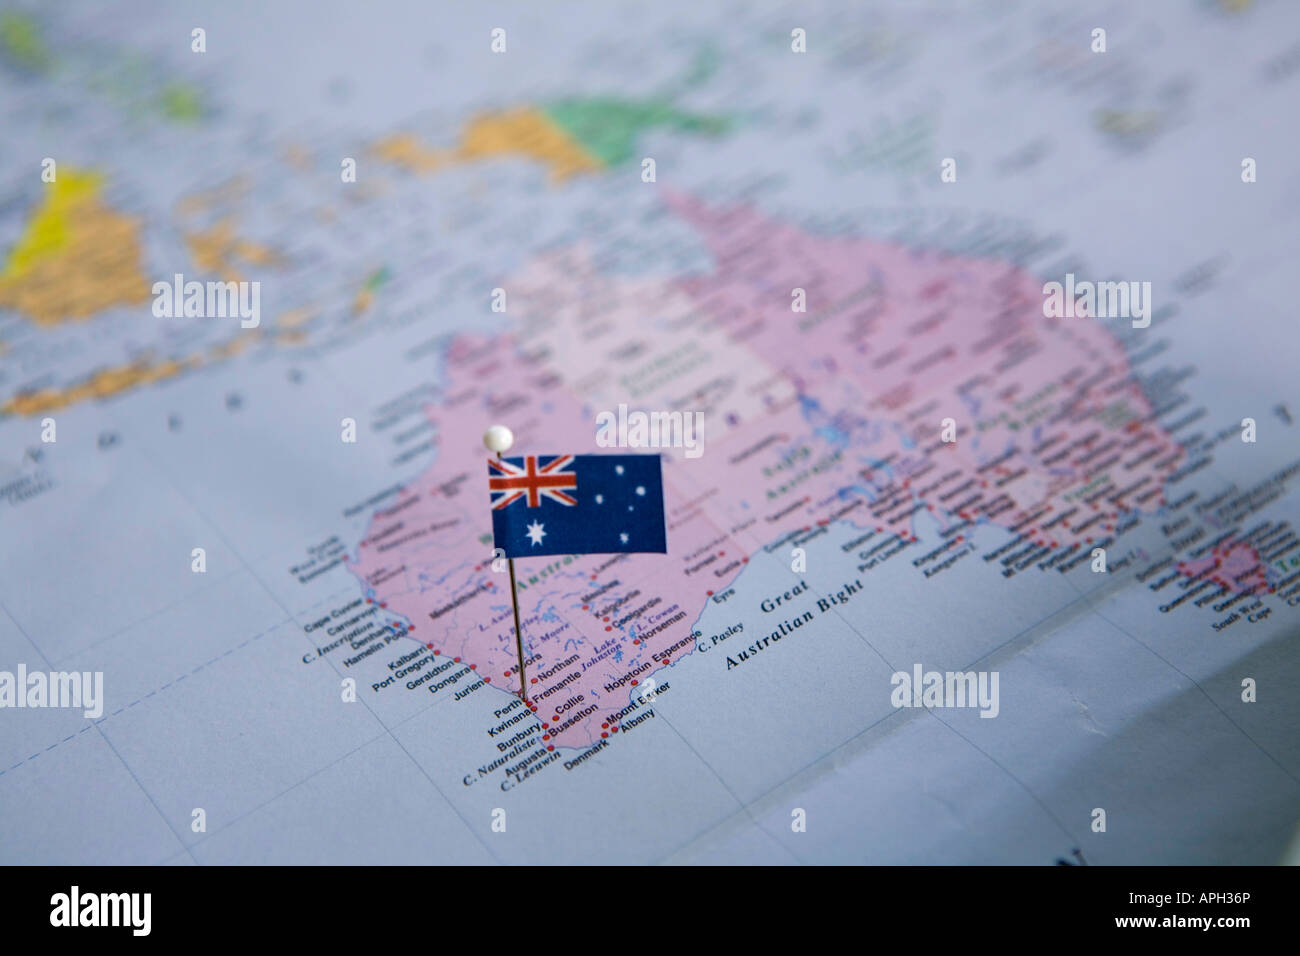 Flag pin placed on world map in perth australia stock photo flag pin placed on world map in perth australia gumiabroncs Gallery